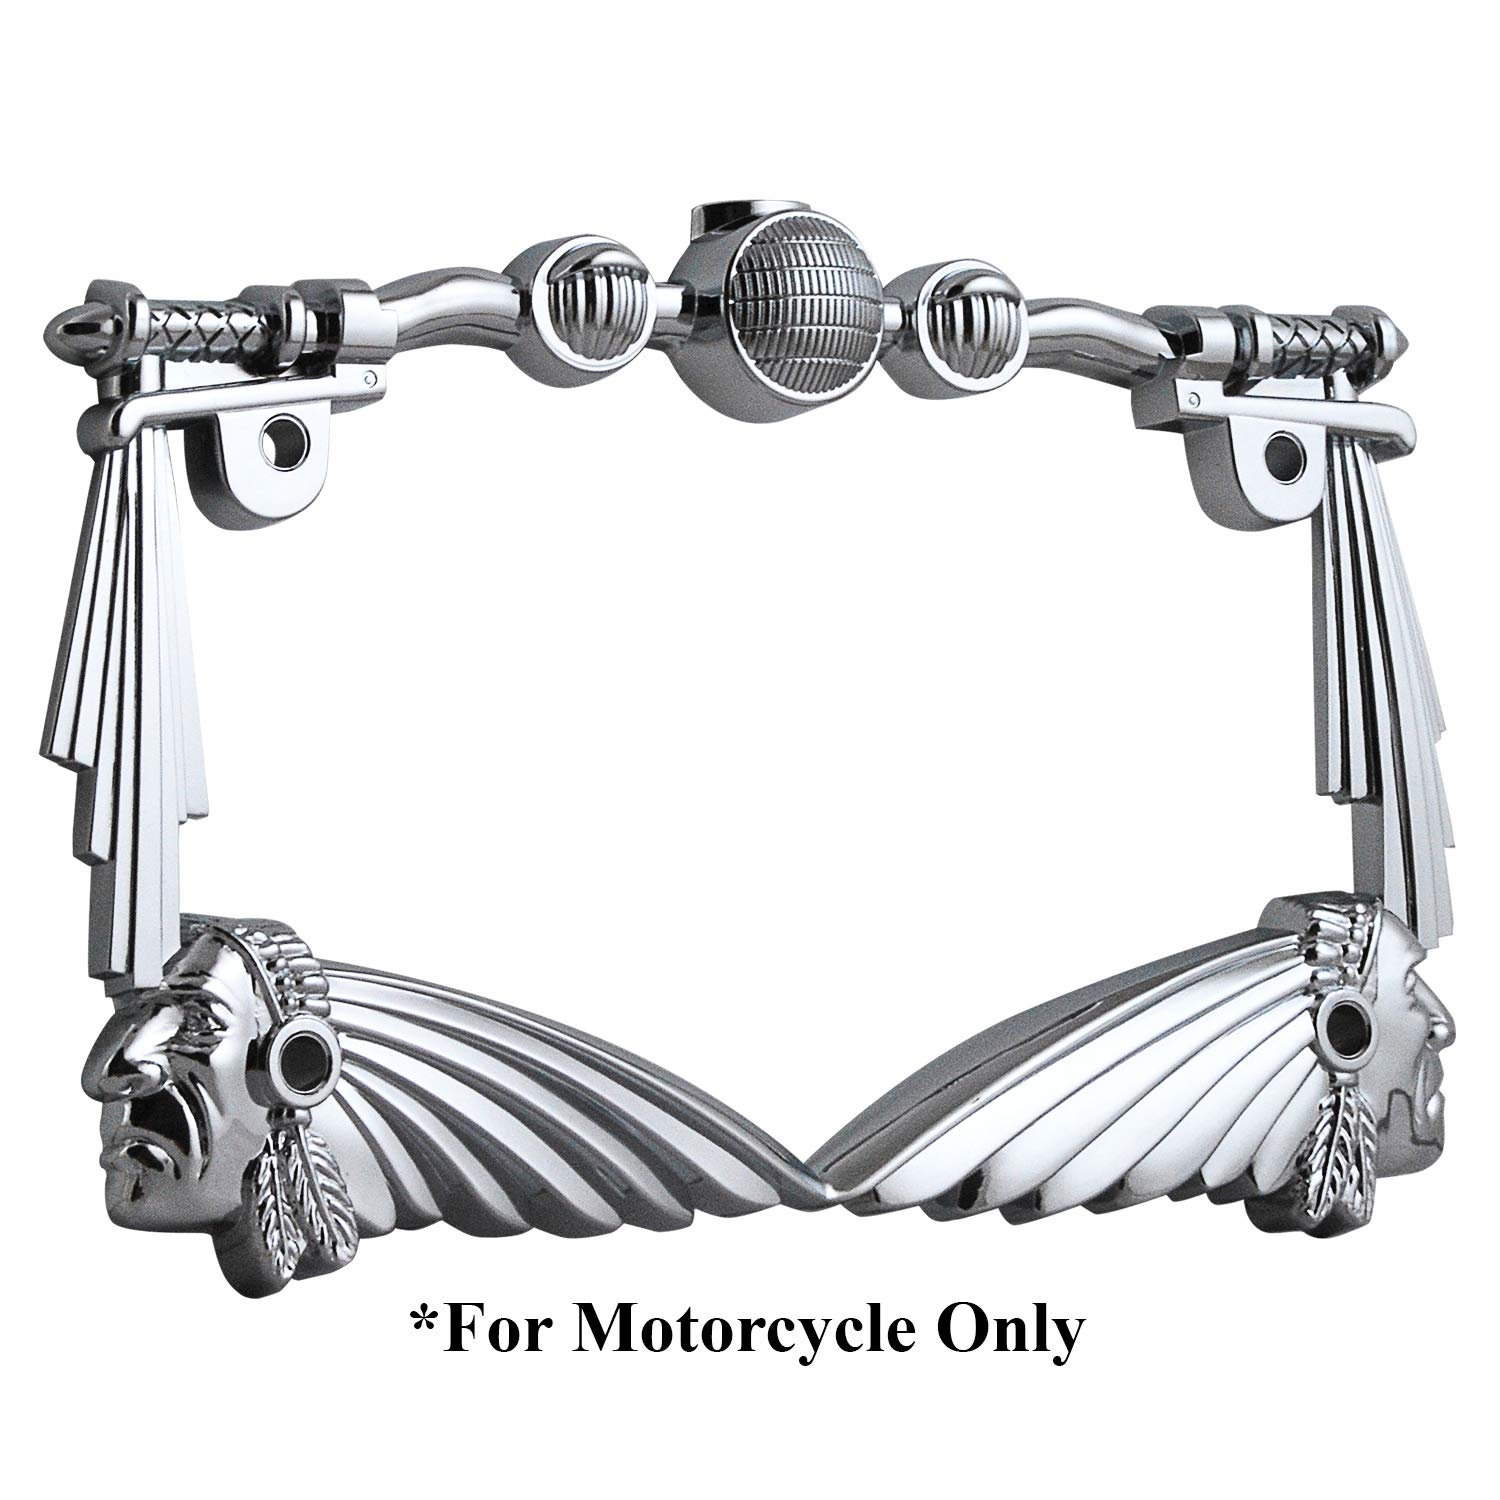 TC Sportline LPF248-C 3D Handle Bar And Indian Chief Style Zinc Metal Chrome Finished Motorcycle License Plate Frame